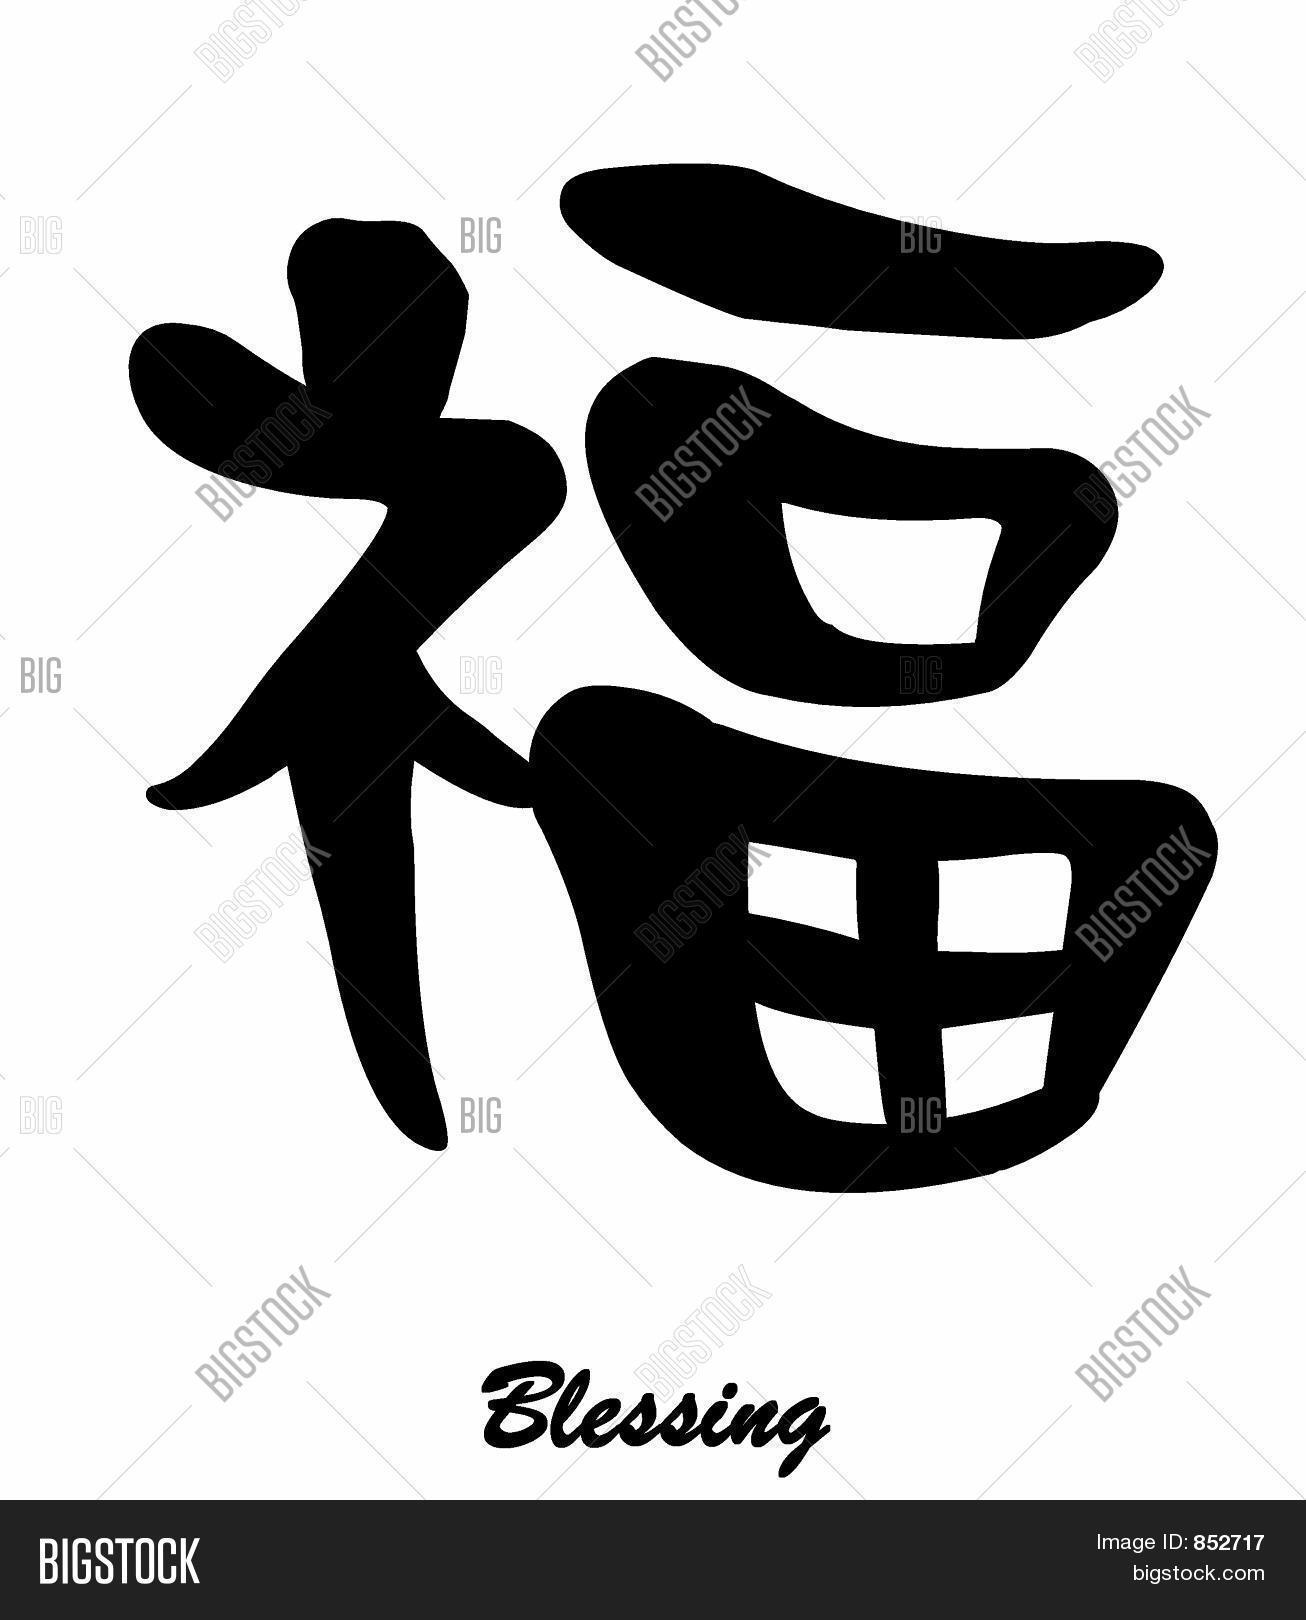 Blessing chinese calligraphy image photo bigstock blessing chinese calligraphy buycottarizona